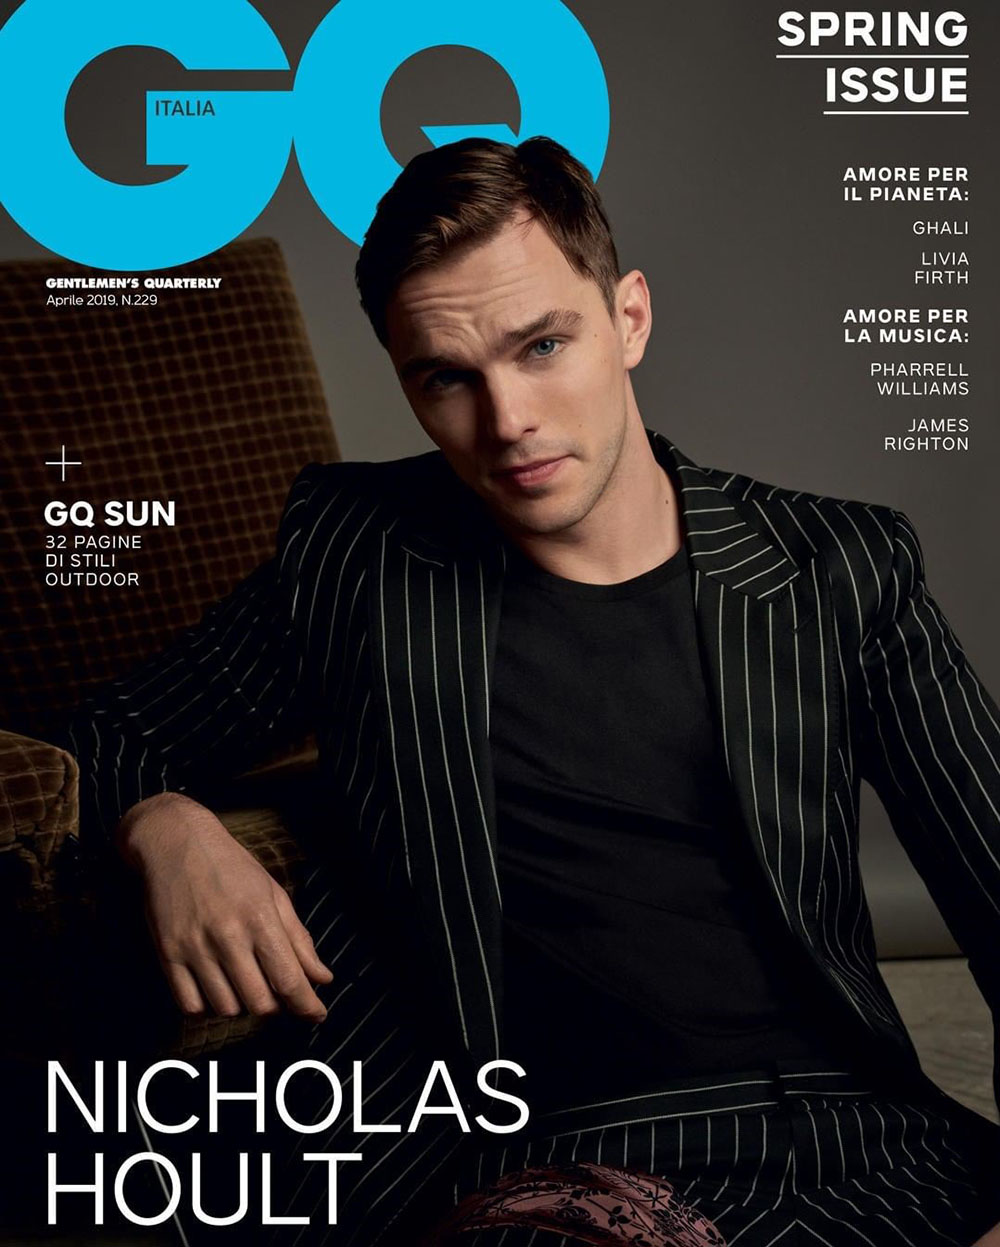 GQ Italia x Nicholas Hoult April 2019 | Numerique Retouch Photo Retouching Studio